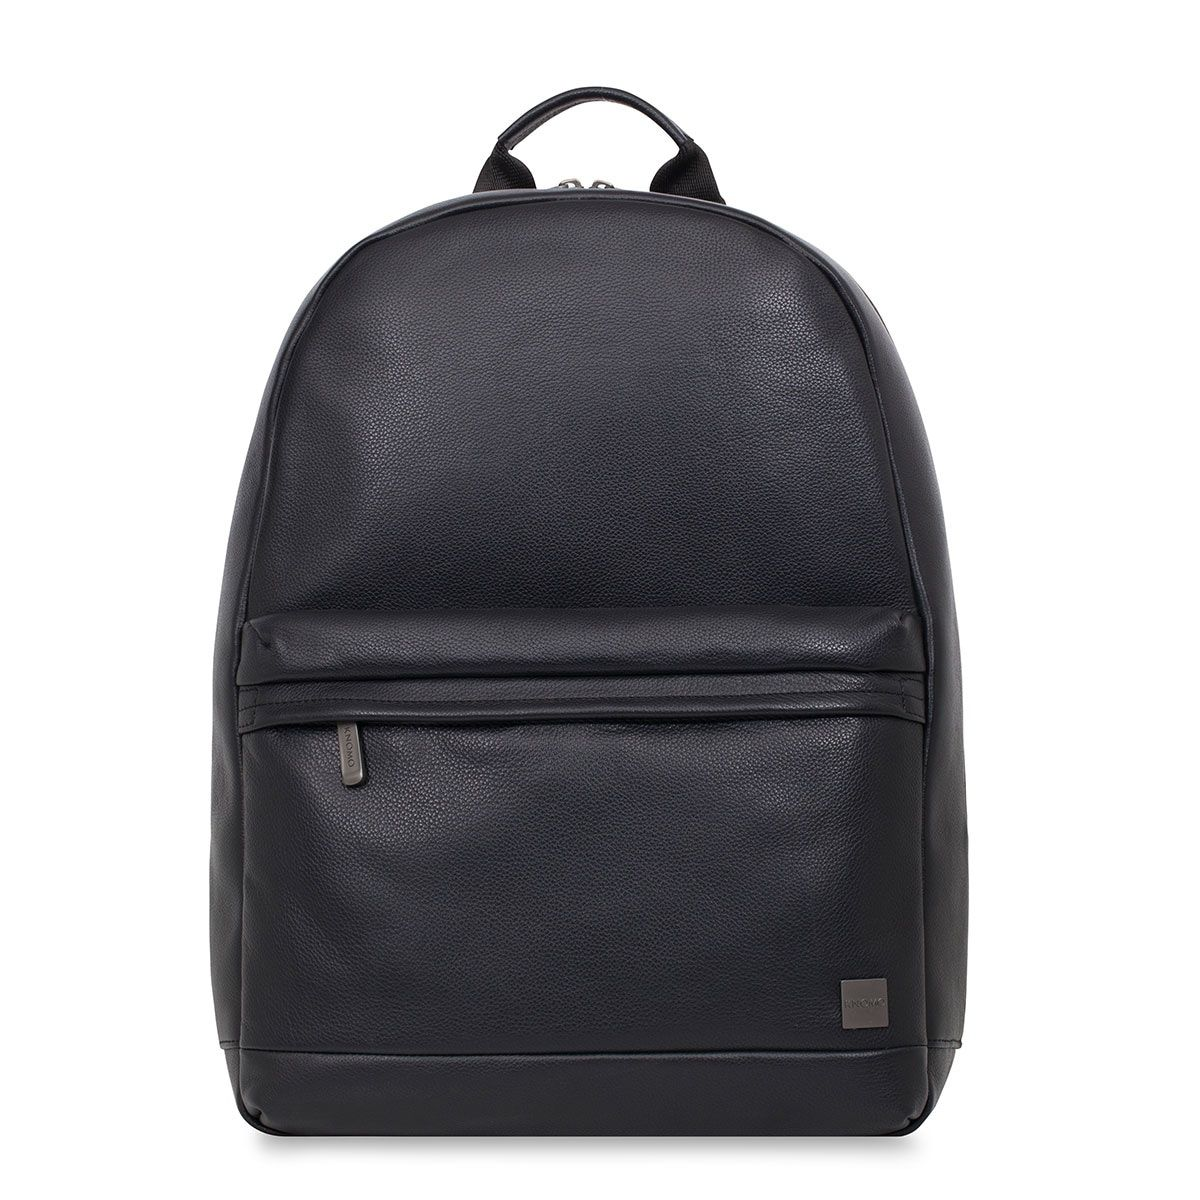 Knomo Albion Leather Laptop Backpack Black 15 inch